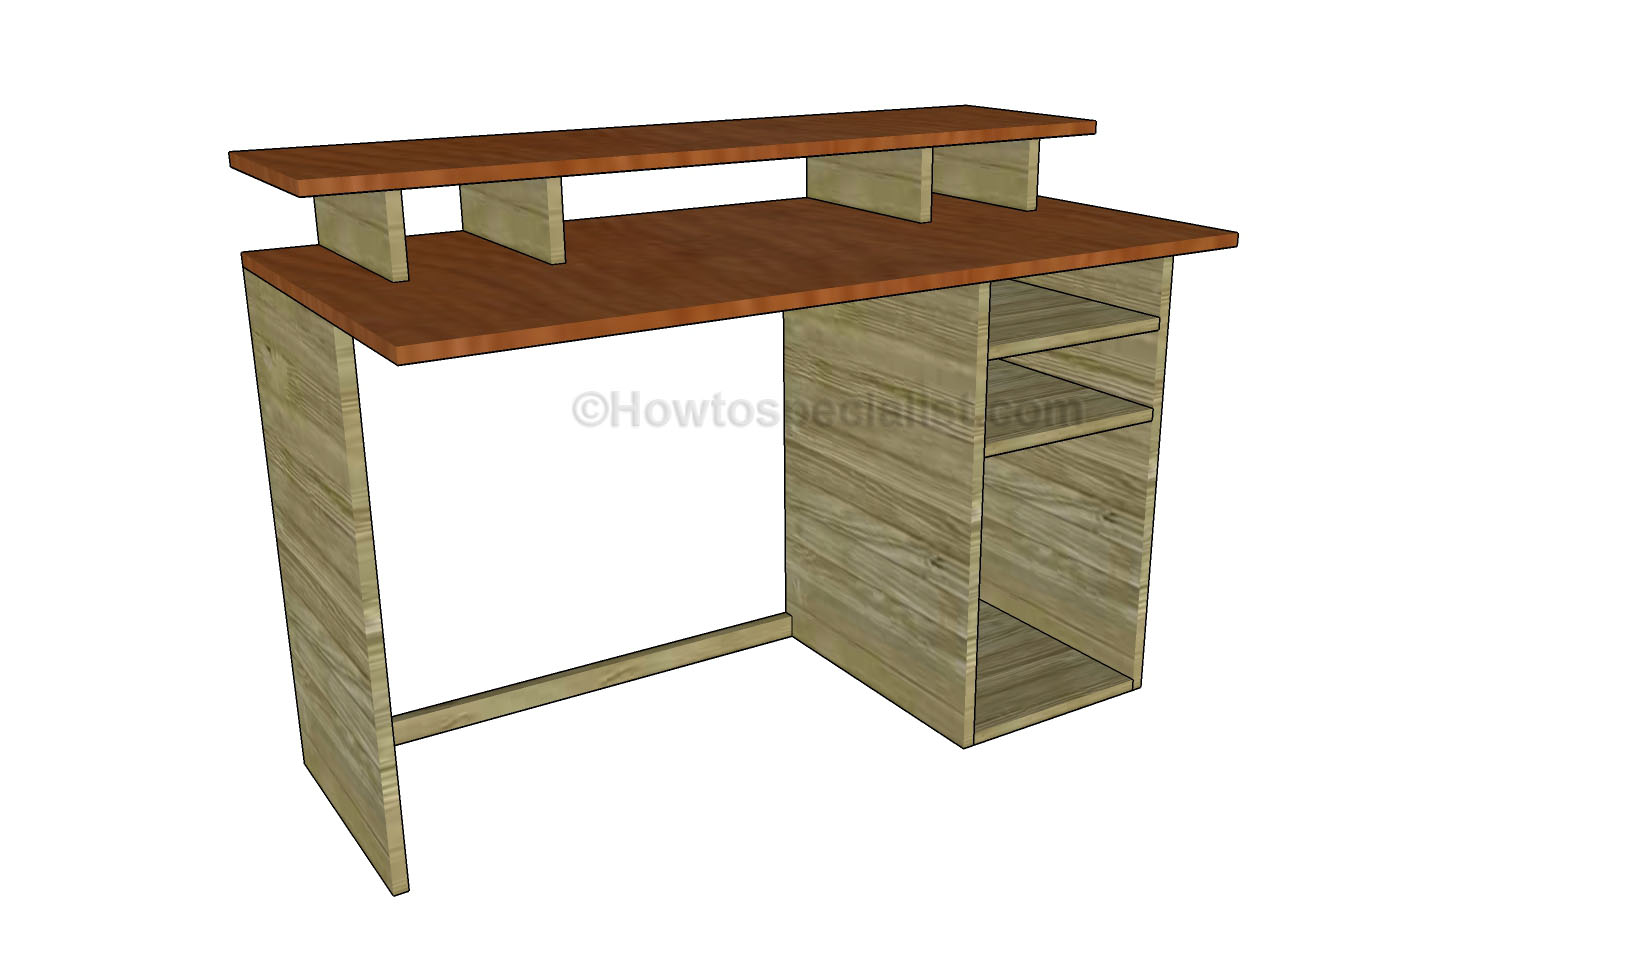 This step by step diy woodworking project is about free computer desk plans.  If you want to learn more about building a desk for you computer, we  recommend ...